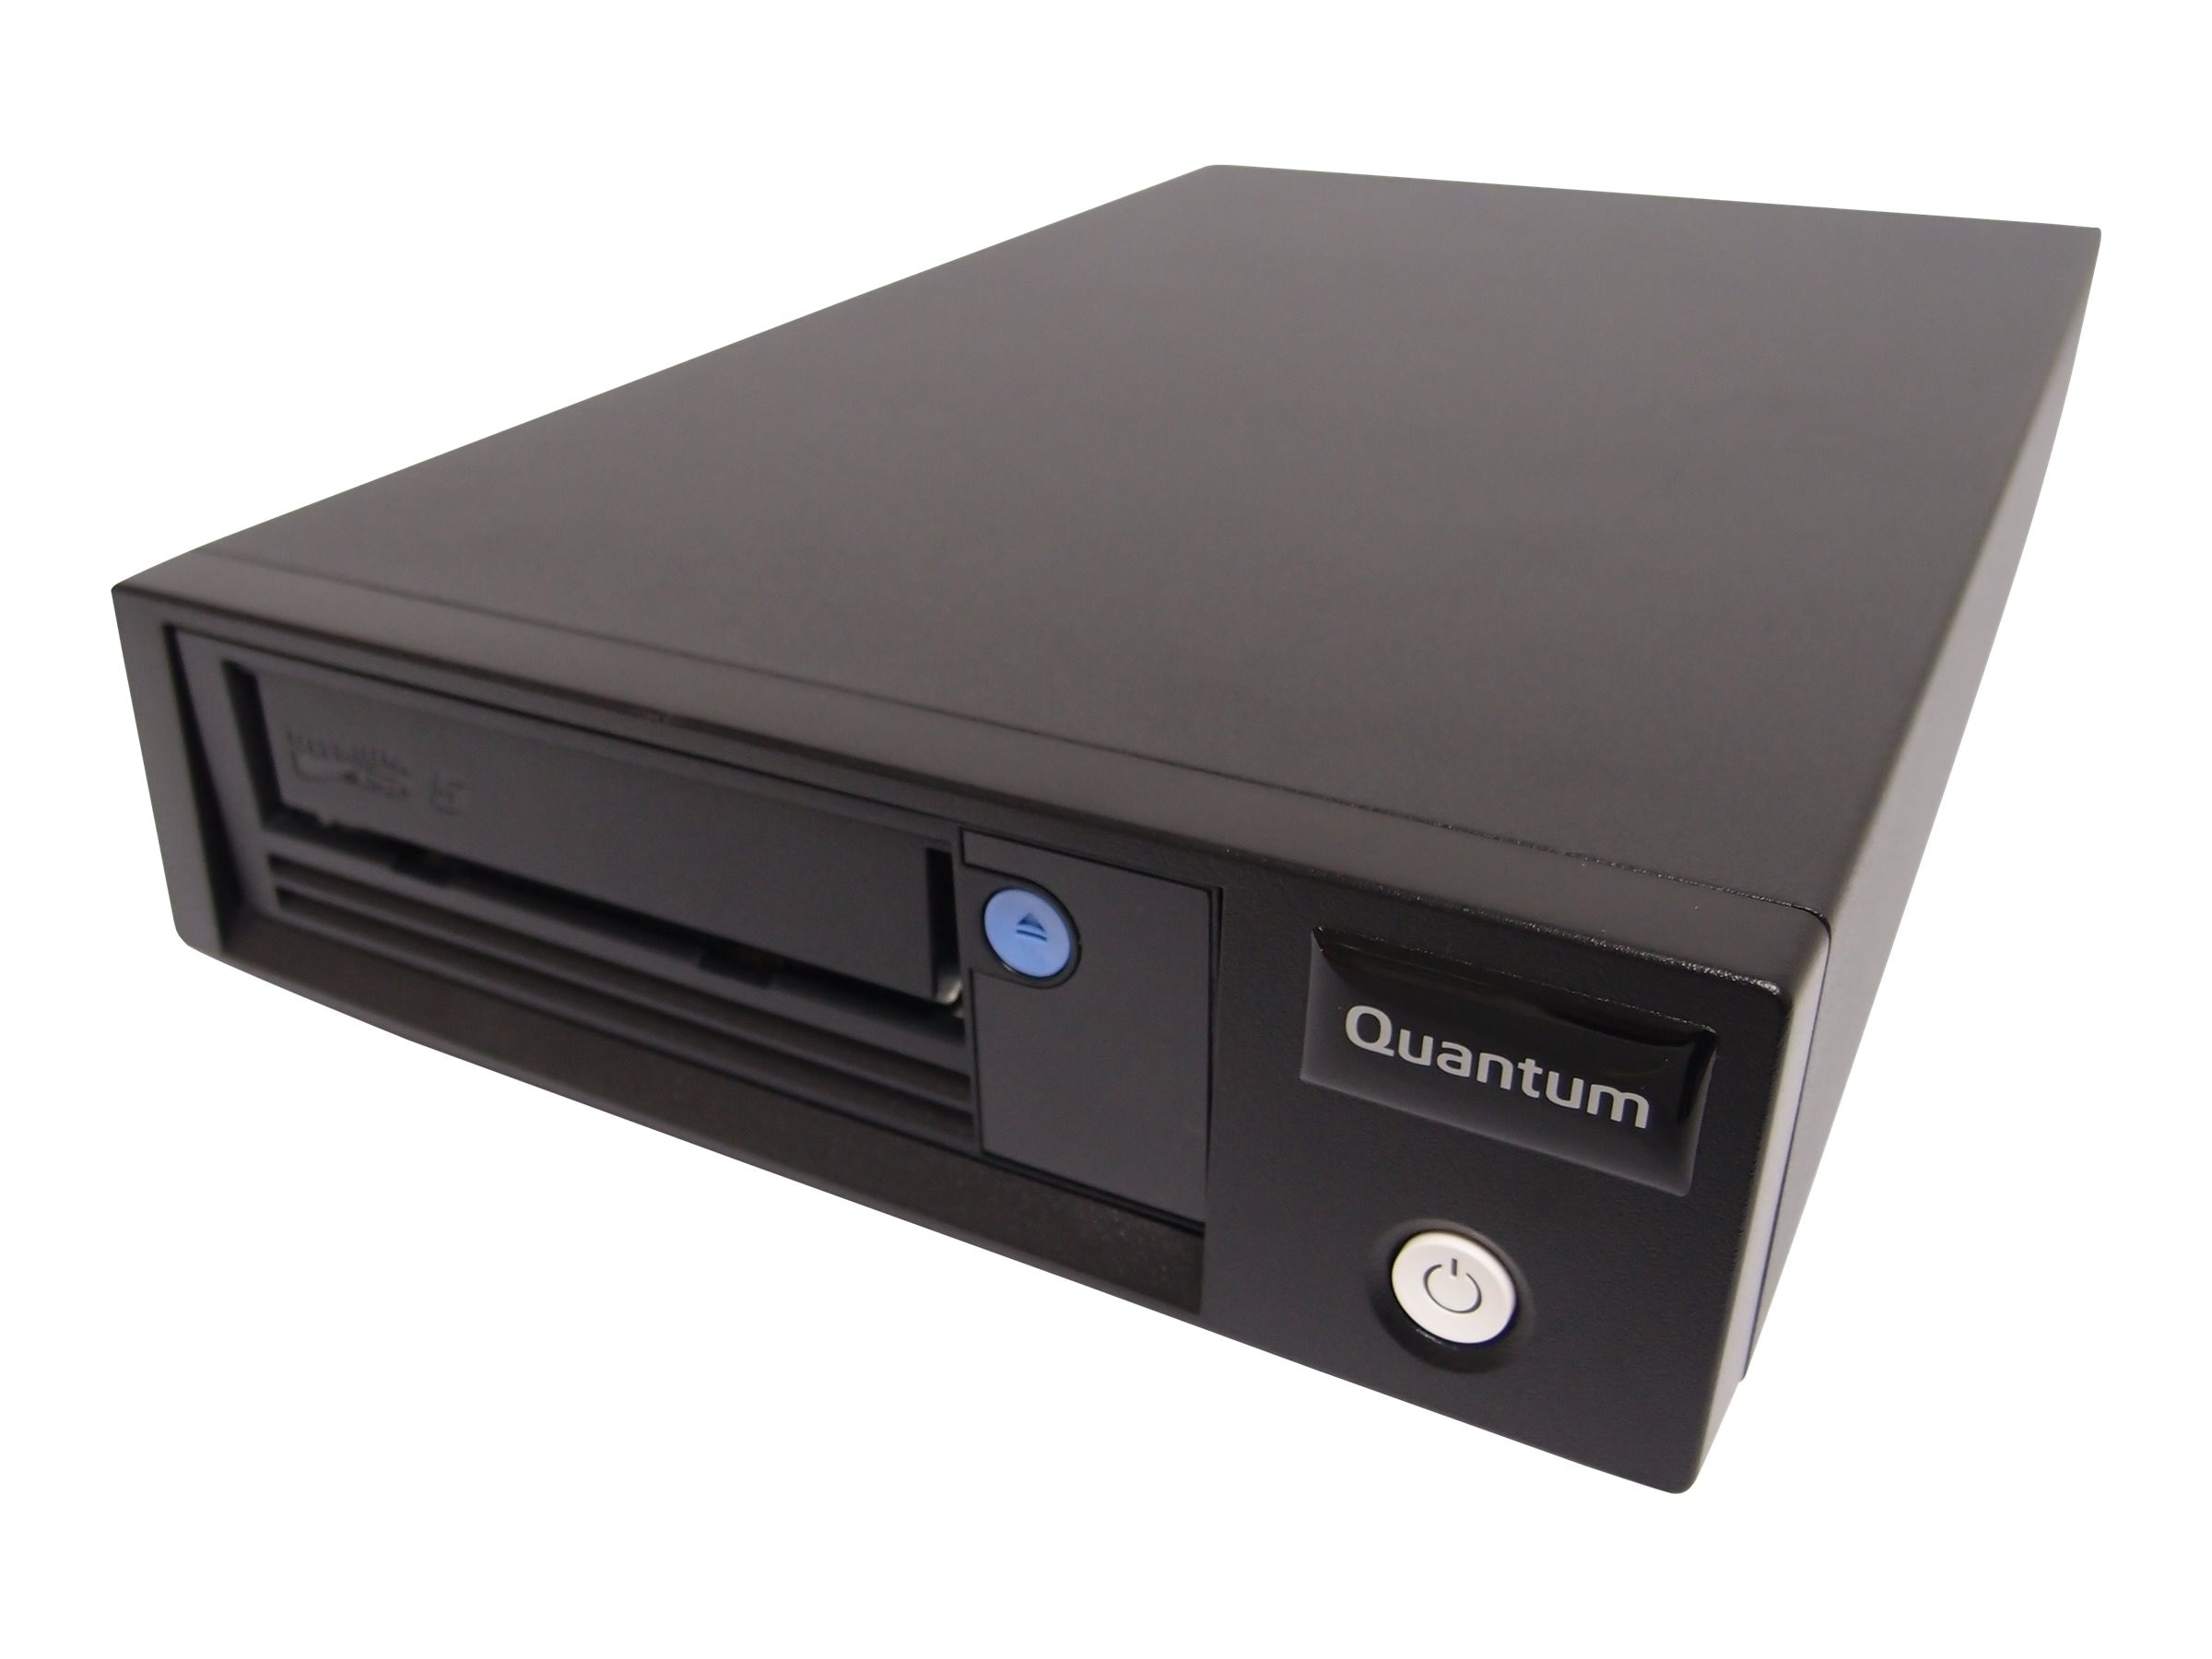 Quantum LTO-5 HH SAS 6Gb s Tabletop Model C Tape Drive - Black w  SAS HBA